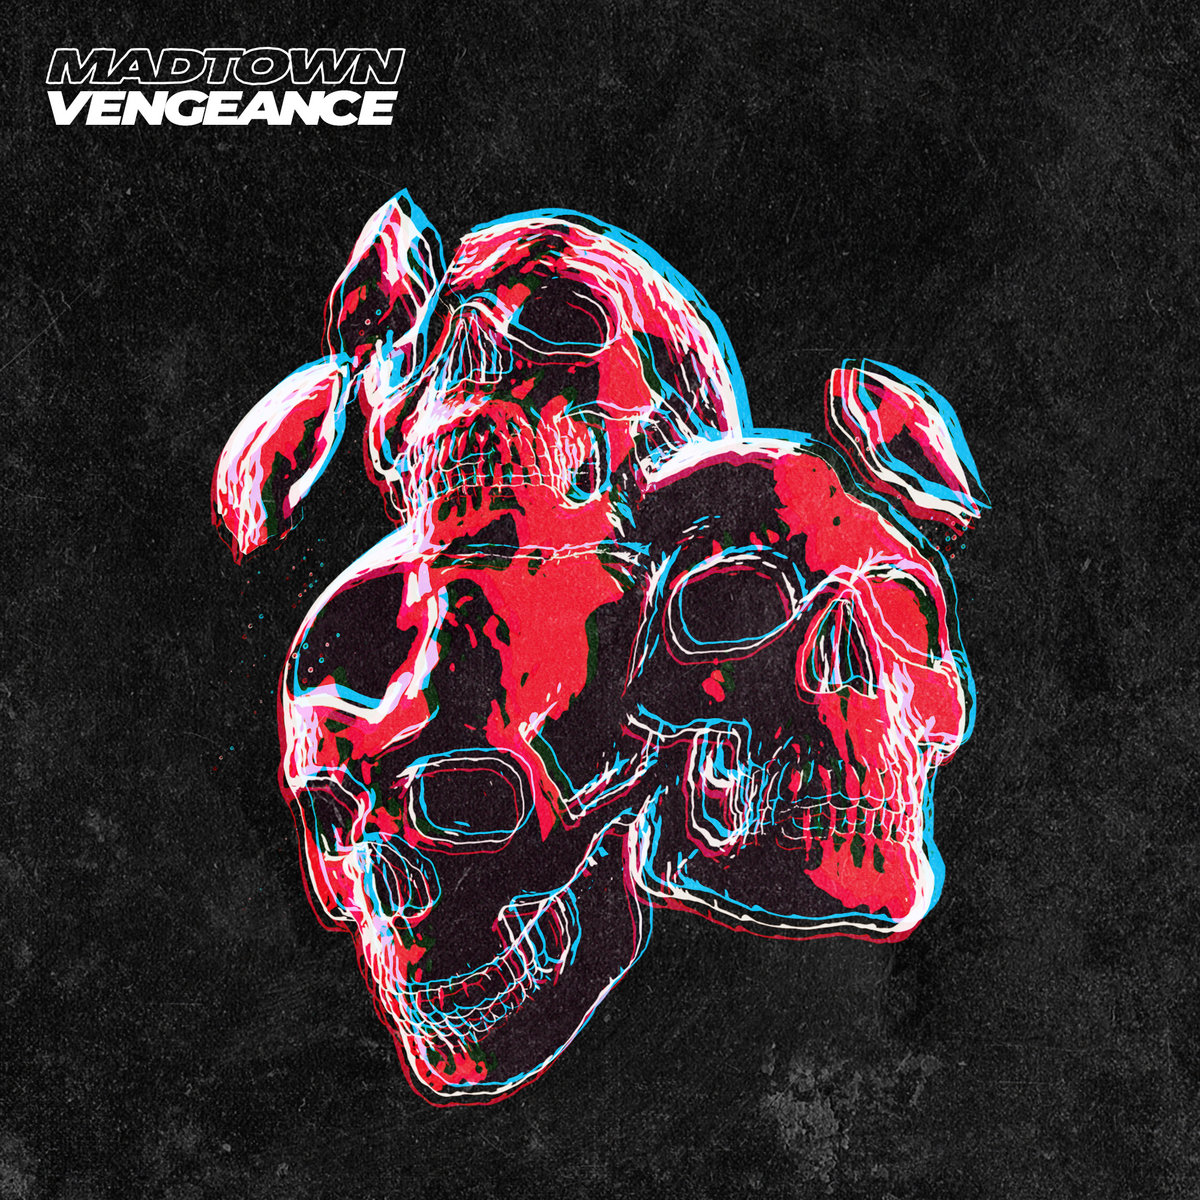 Madtown - Vengeance [single] (2019)